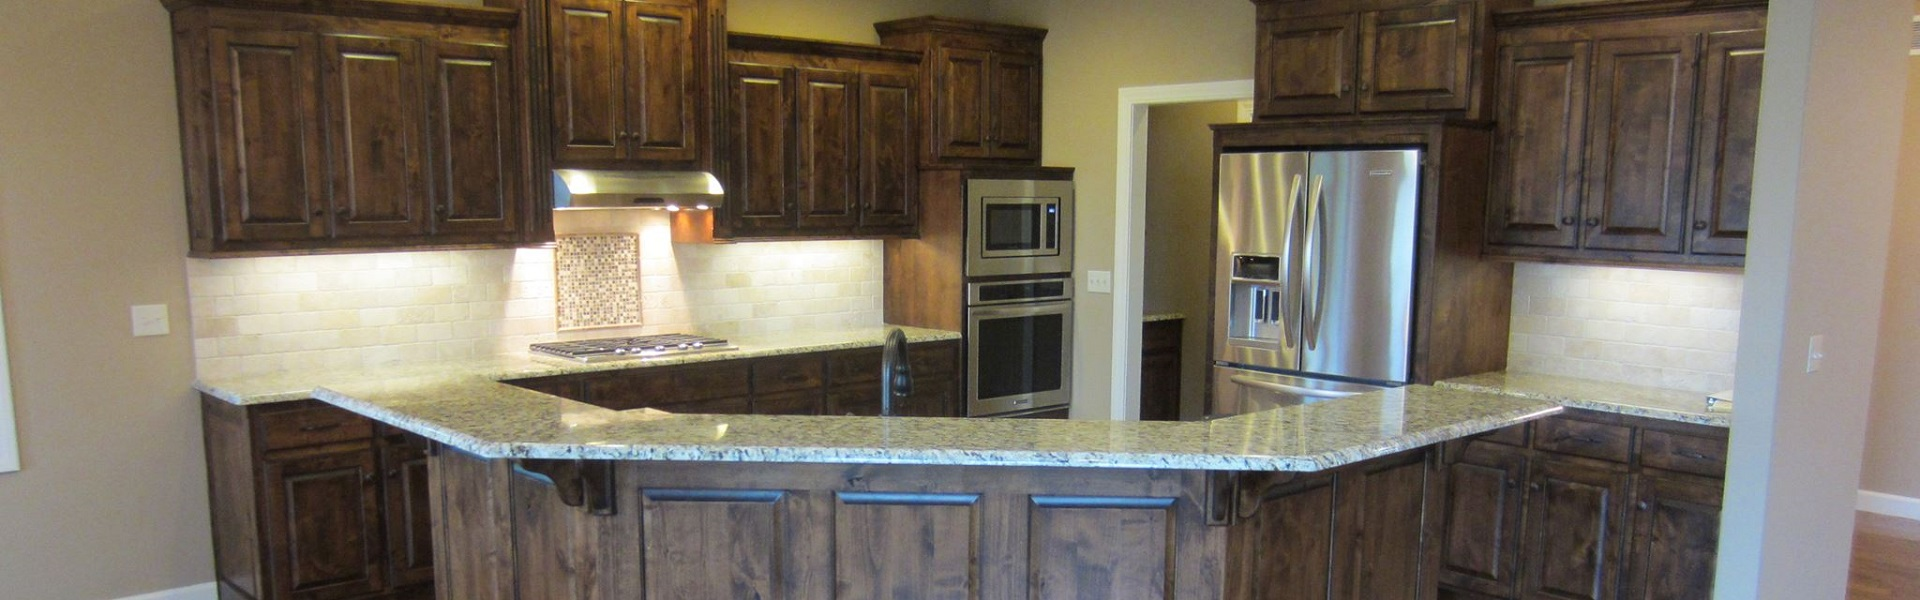 Interior Discount Kitchen Cabinets Kansas City kansas city cabinets kc cabinet makers bathroom kitchen slider